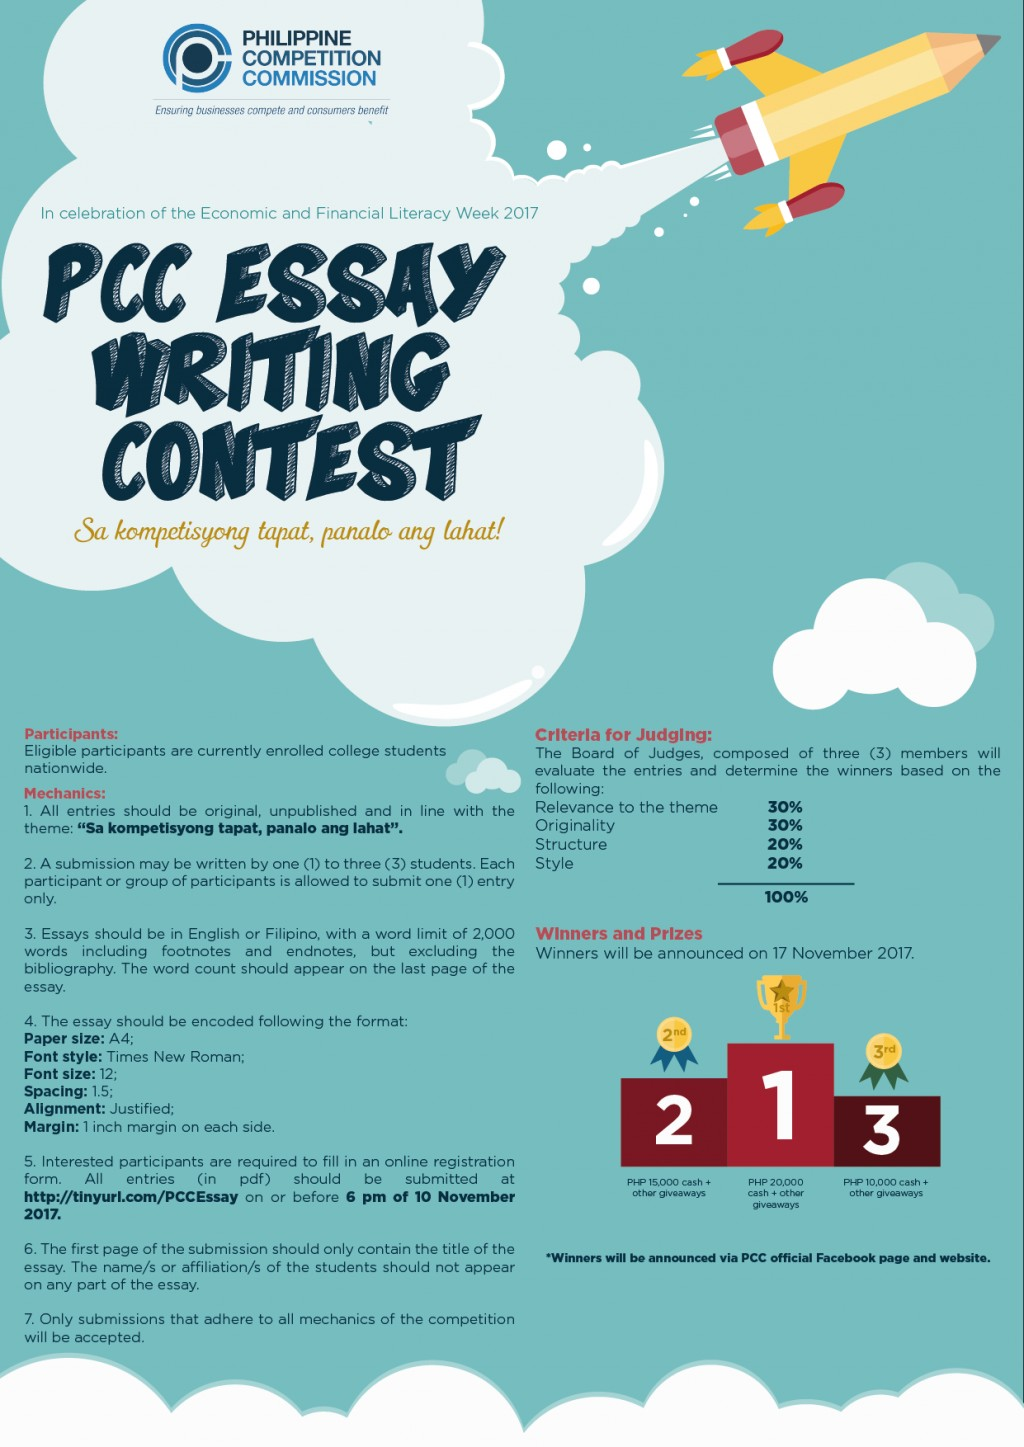 004 Essay Example Writing Contest Poster Final Incredible International Competitions For High School Students Rules By Essayhub Large